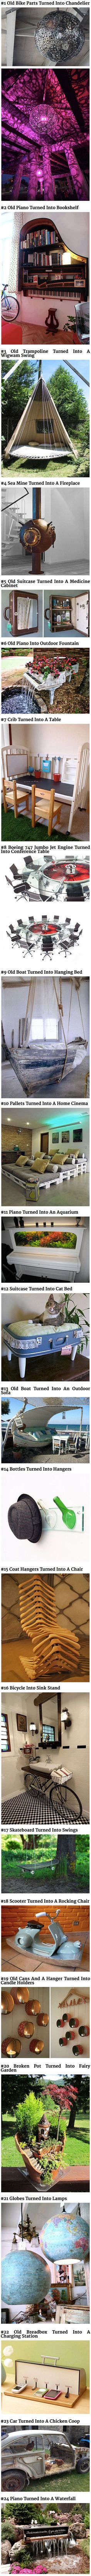 Here are some cool and creative ways geeks have repurposed everyday things. Like the piano fountain/aquarium, the cat bed, or the fairy garden. SO SHUT UP AND TAKE MY MONEY! My New Room, My Room, Choses Cool, Cool Inventions, Future Inventions, Style Deco, Take My Money, My Dream Home, Life Hacks